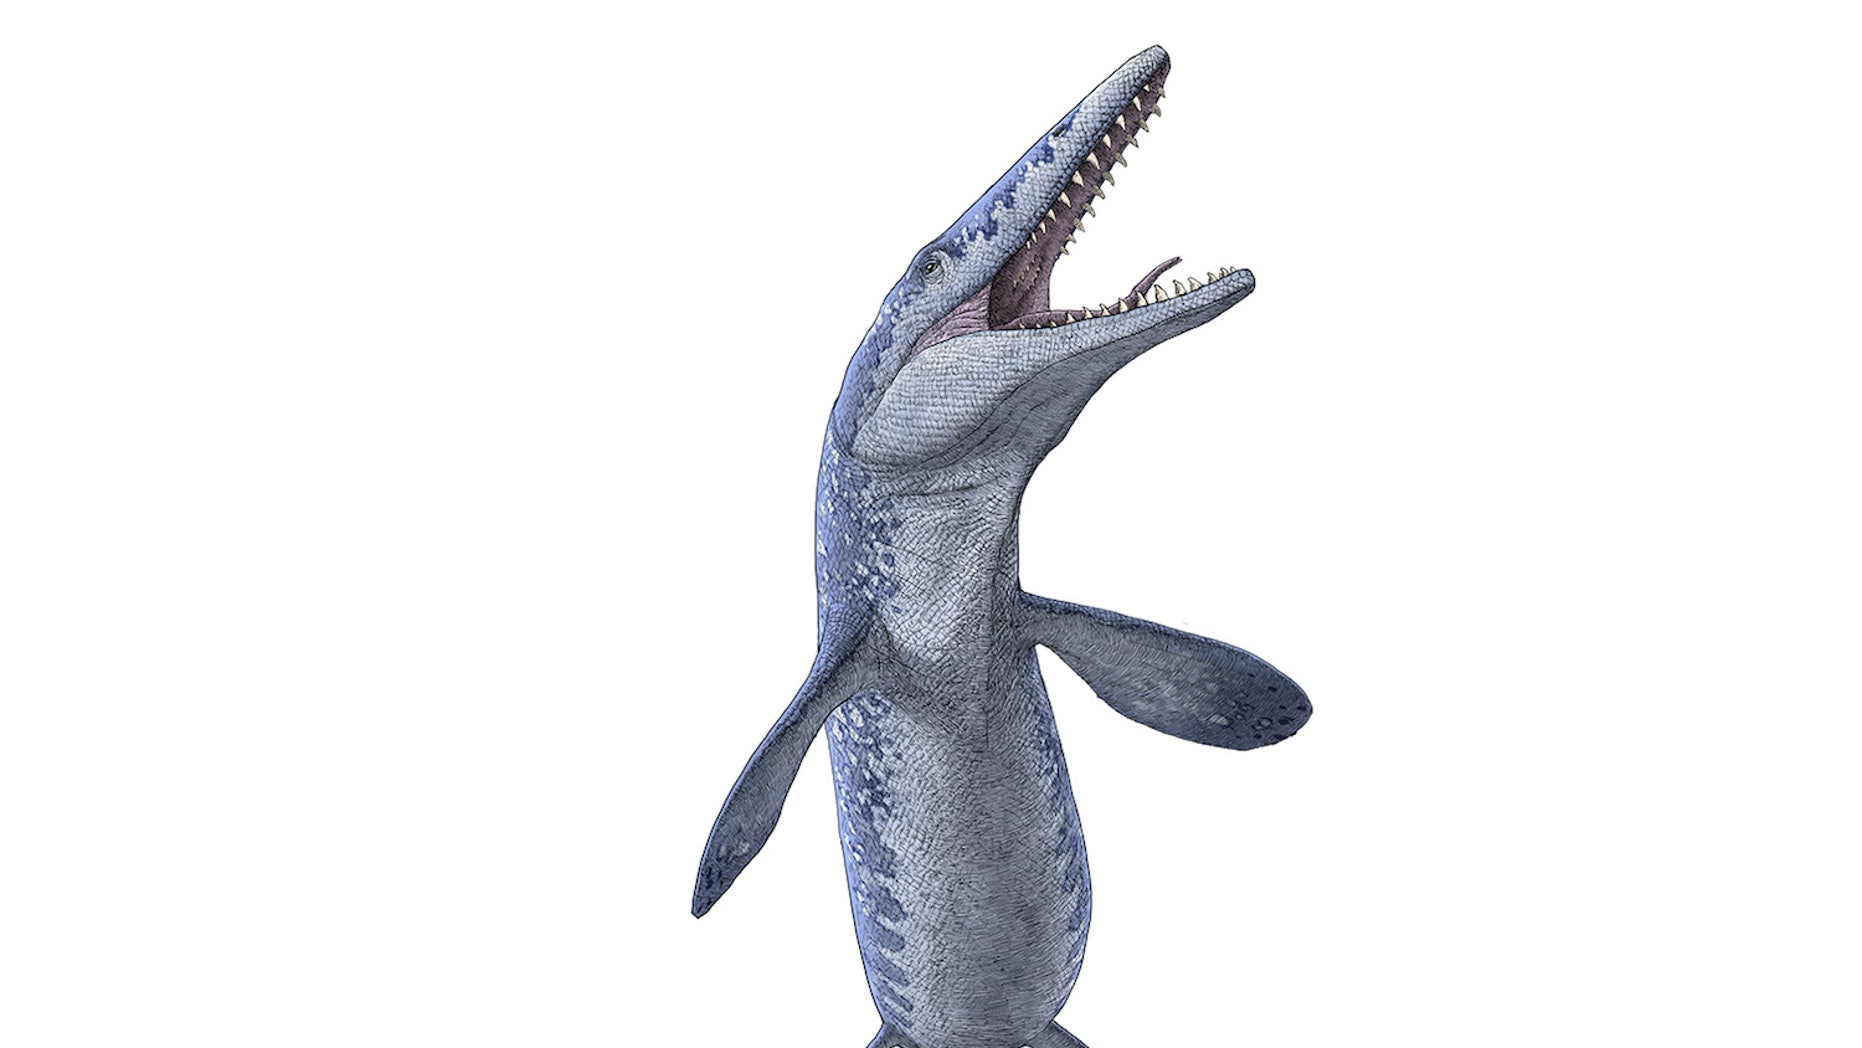 An illustration of <i>Tylosaurus</i>, a mosasaur that lived during the dinosaur age.